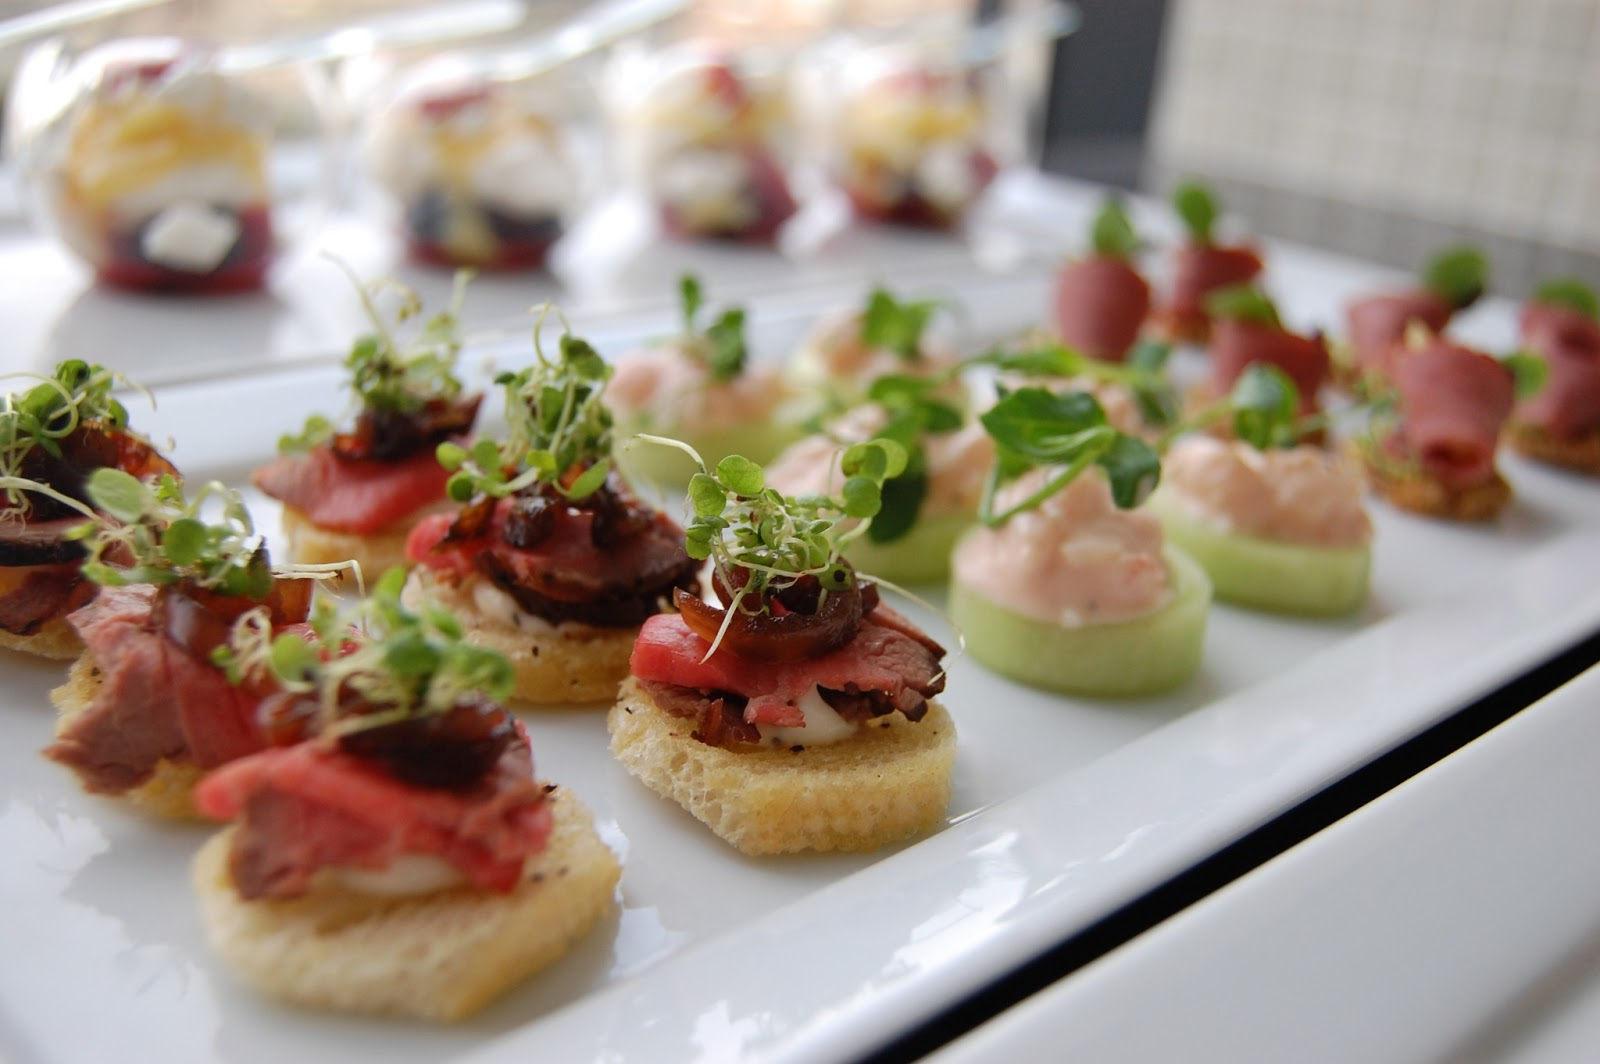 Weddings at powerscourt house canapes and starters for Italian canape ideas